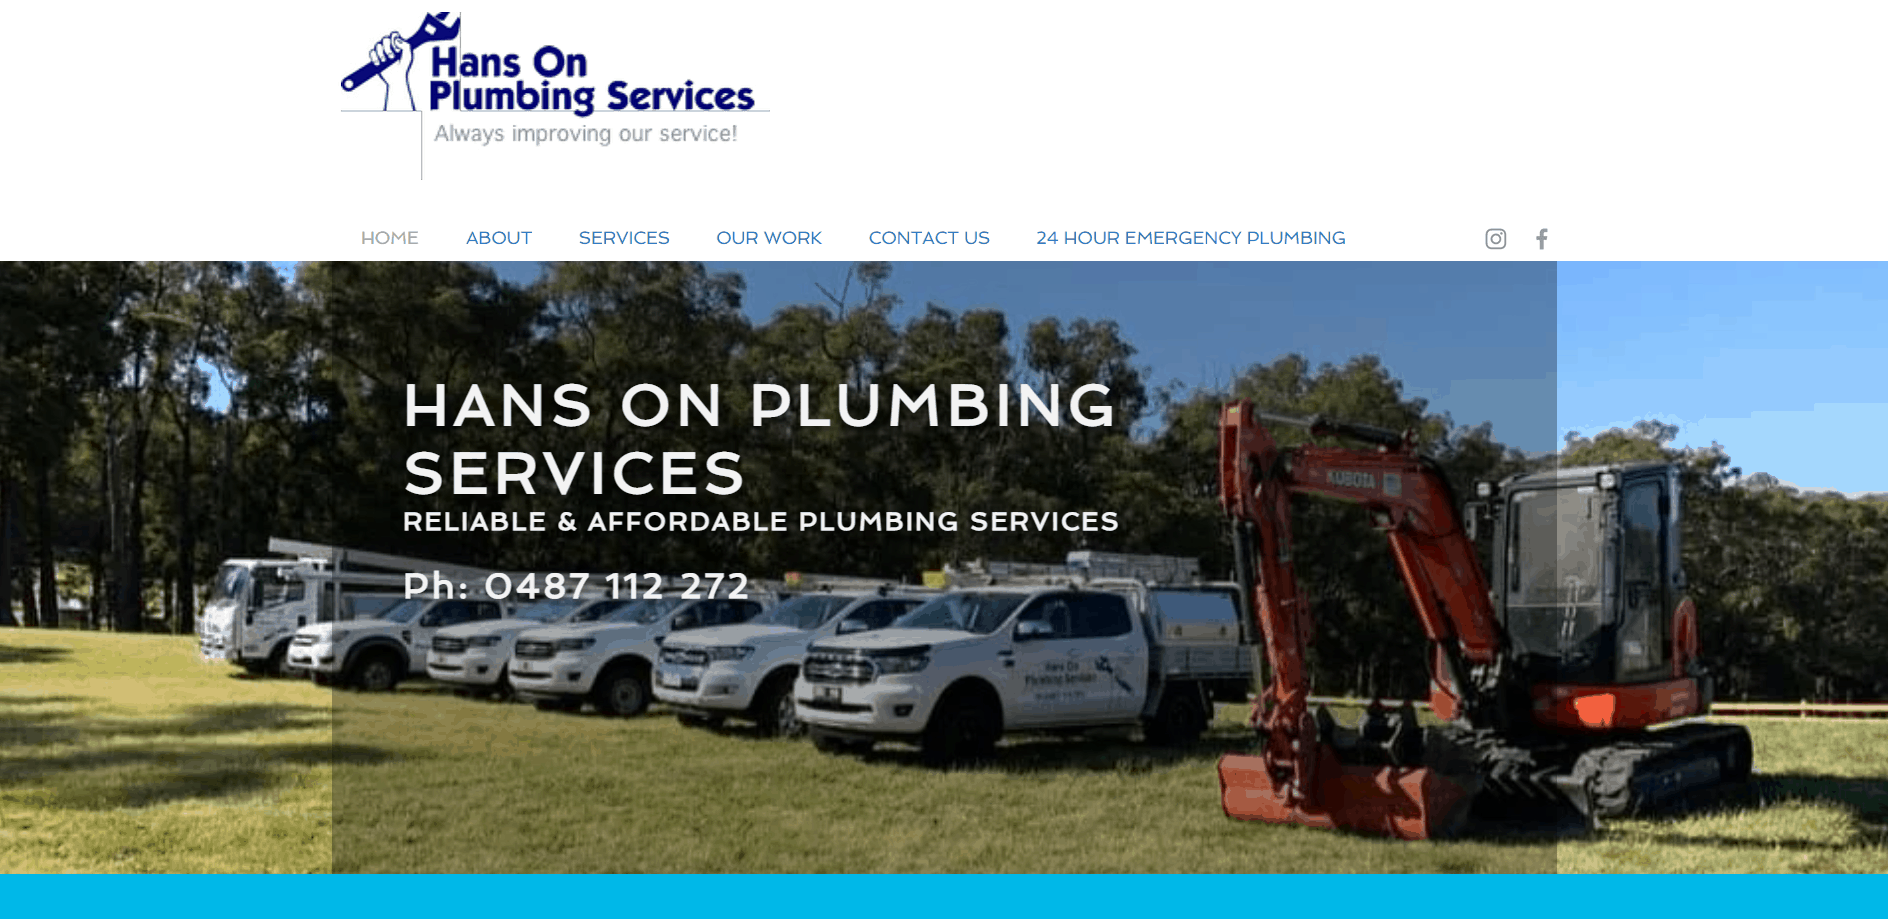 Hans On Plumbing Services